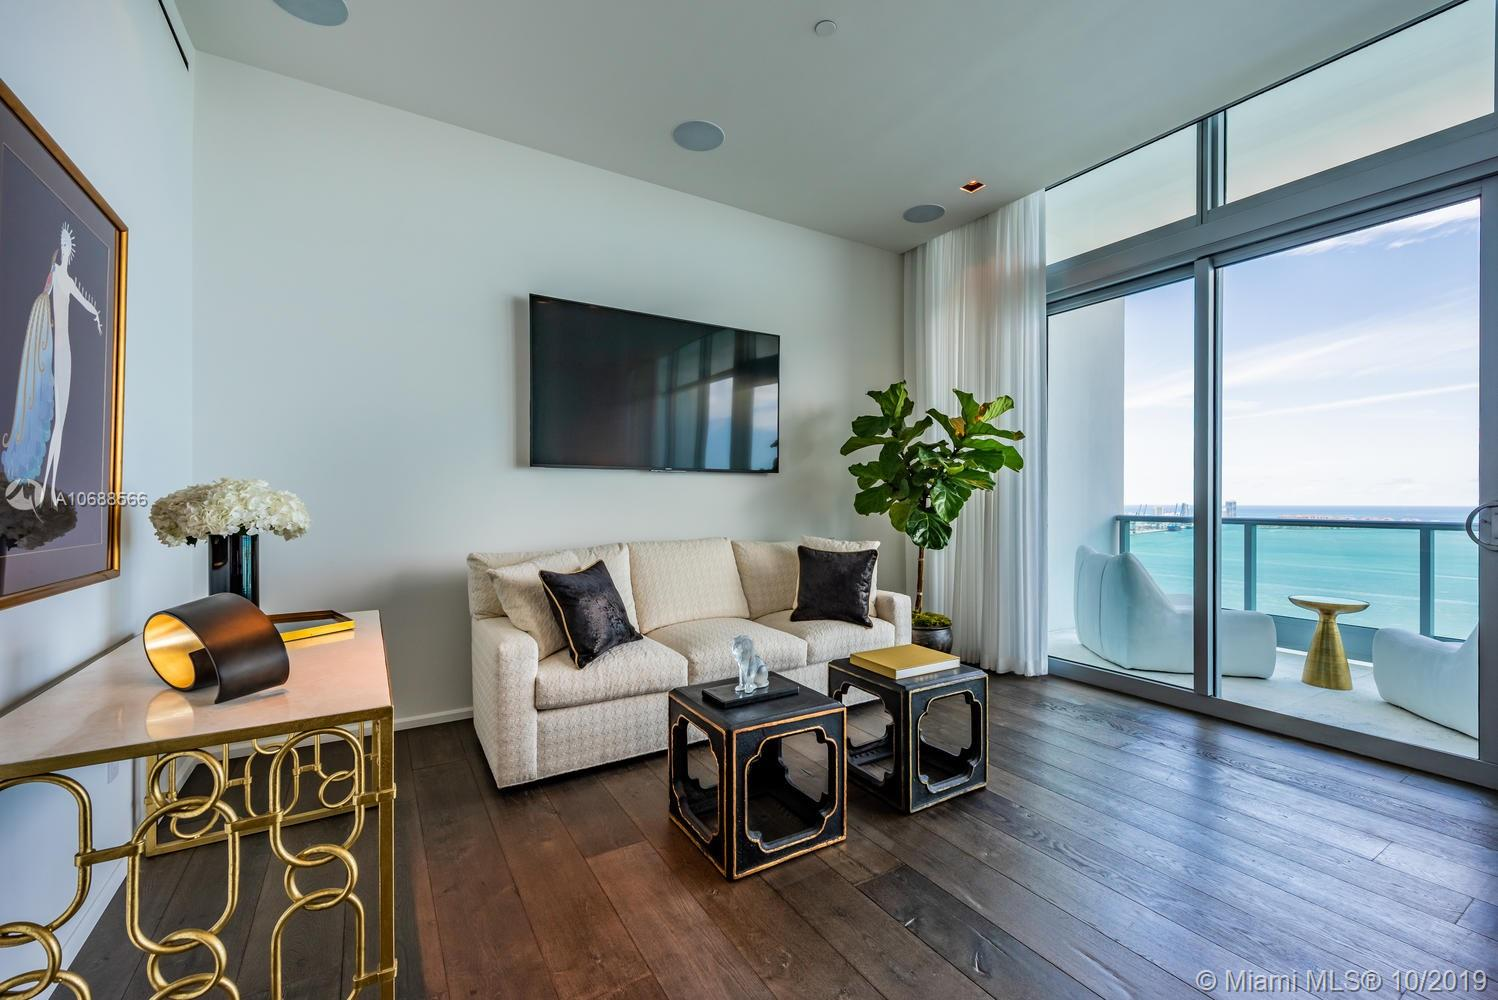 1331 Brickell bay dr-PH4707 miami-fl-33131-a10688566-Pic27